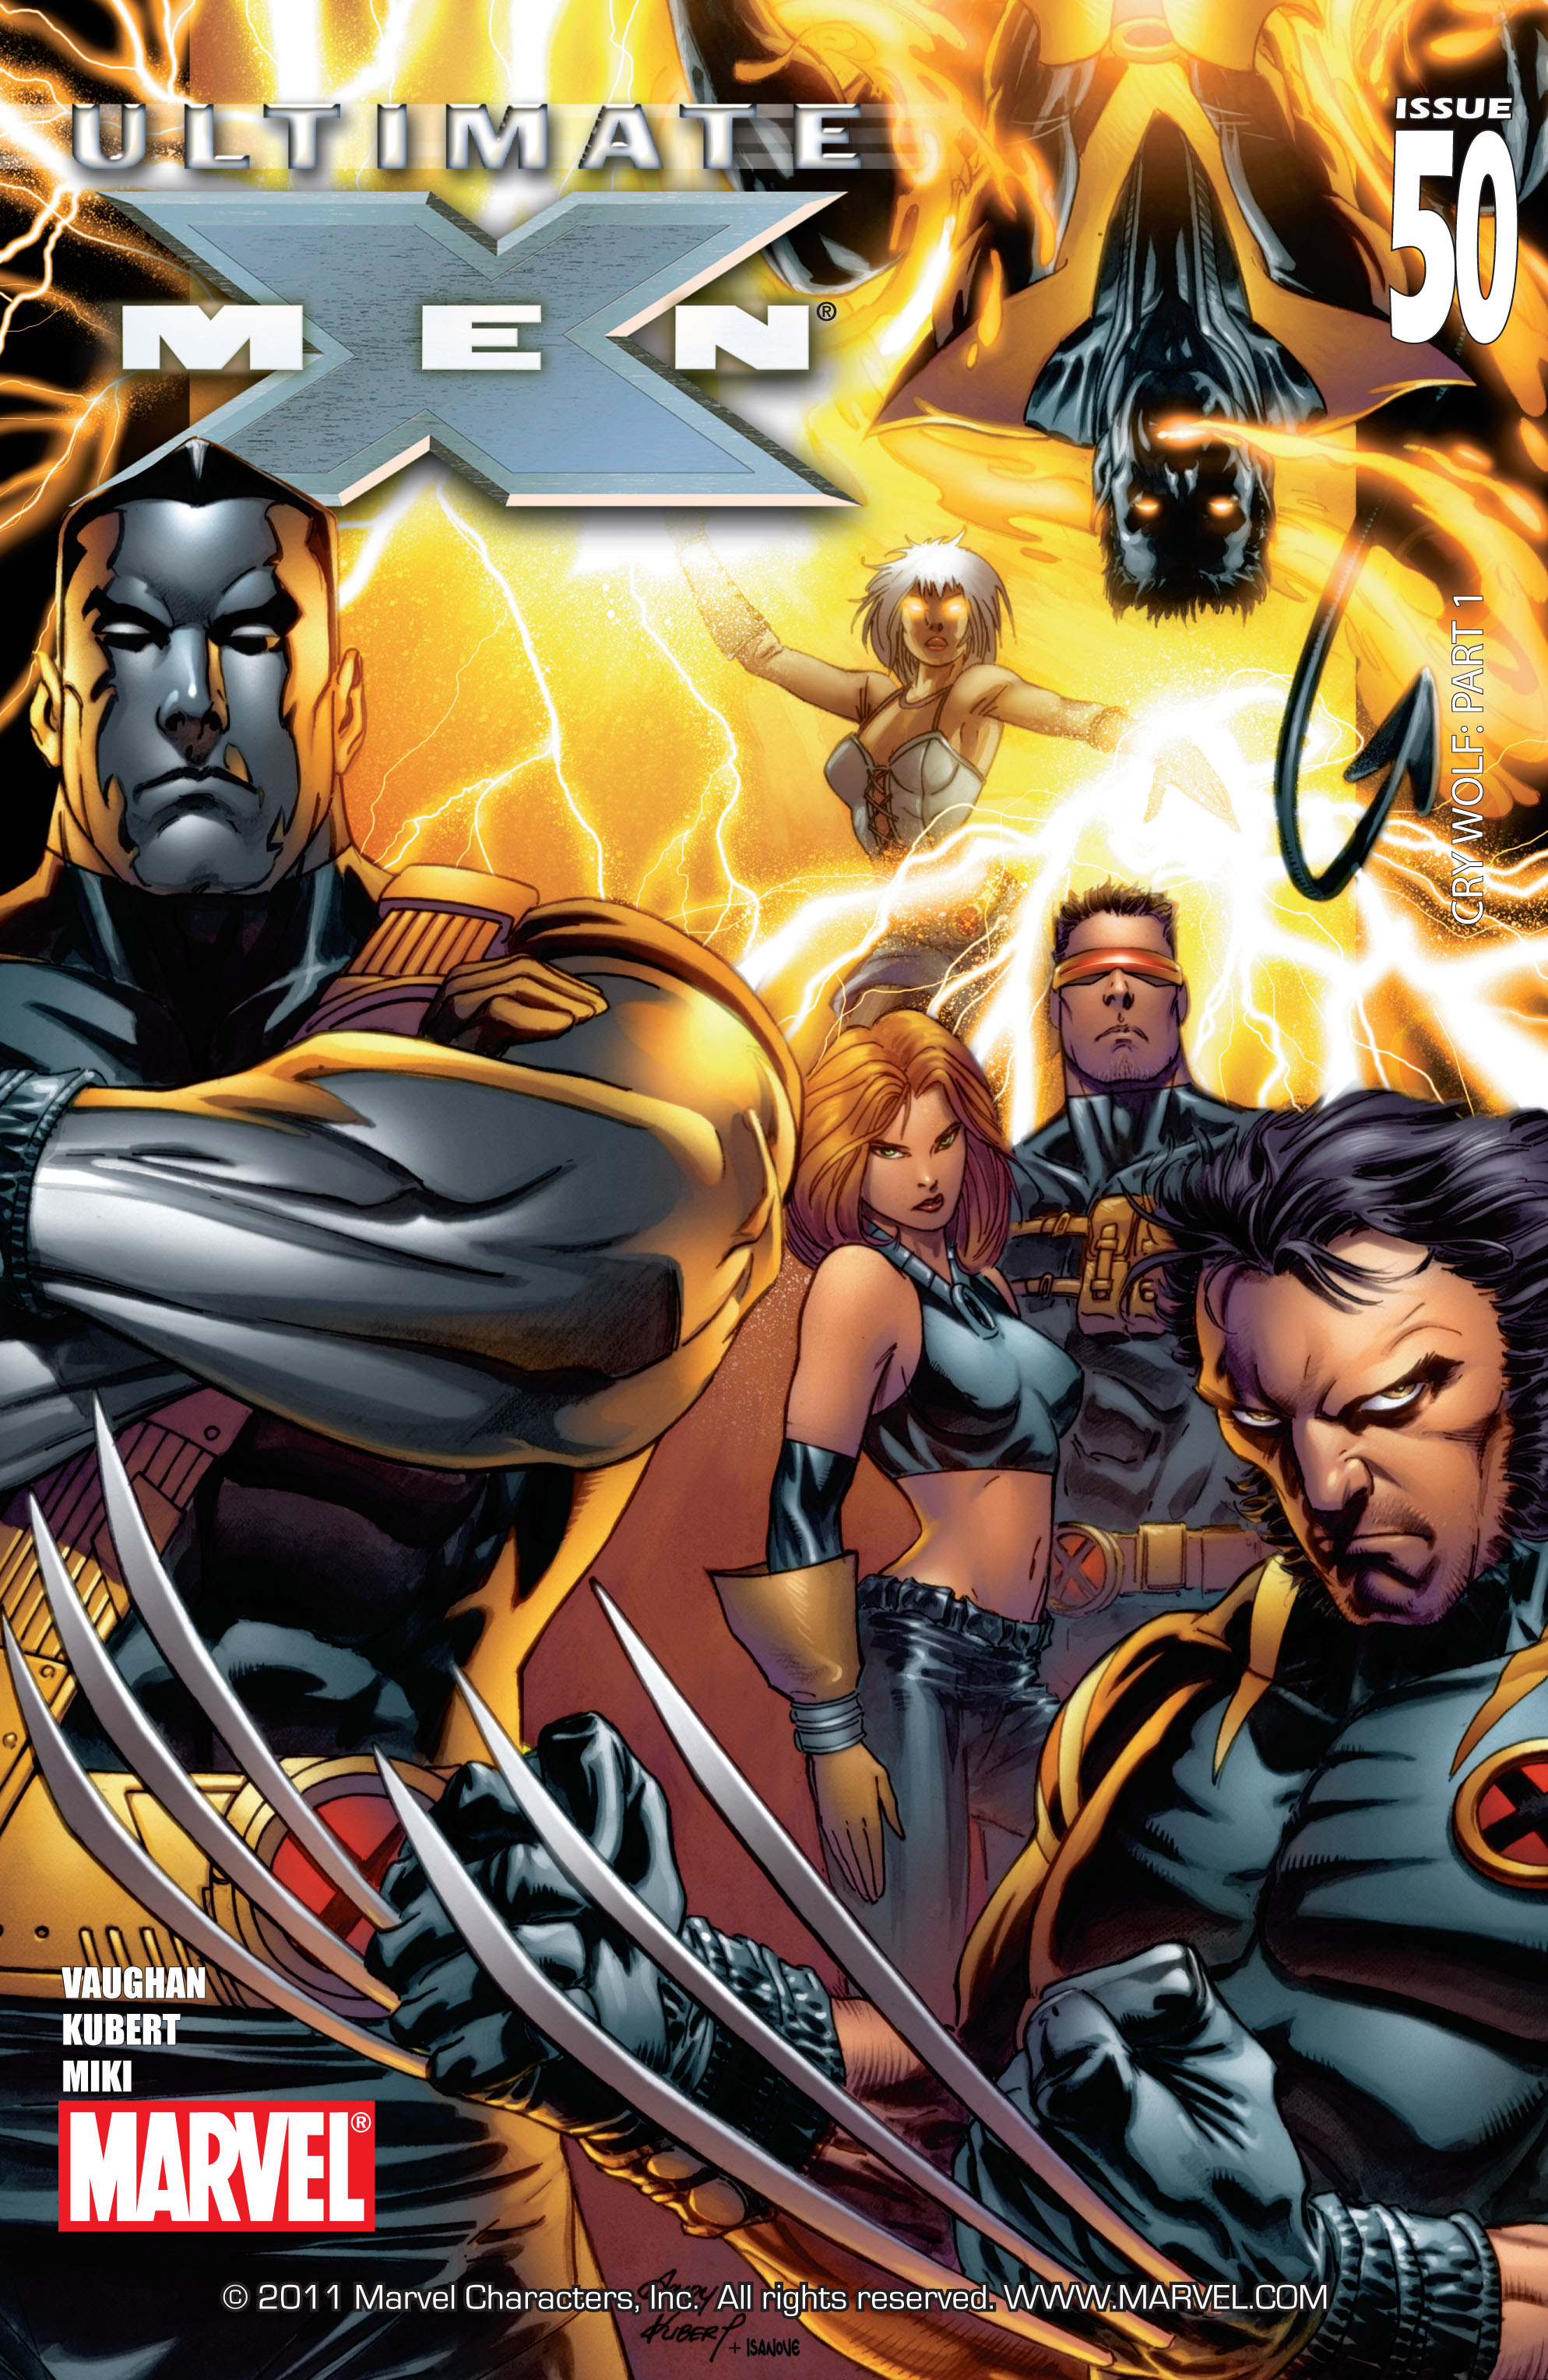 Read online Ultimate X-Men comic -  Issue #50 - 1